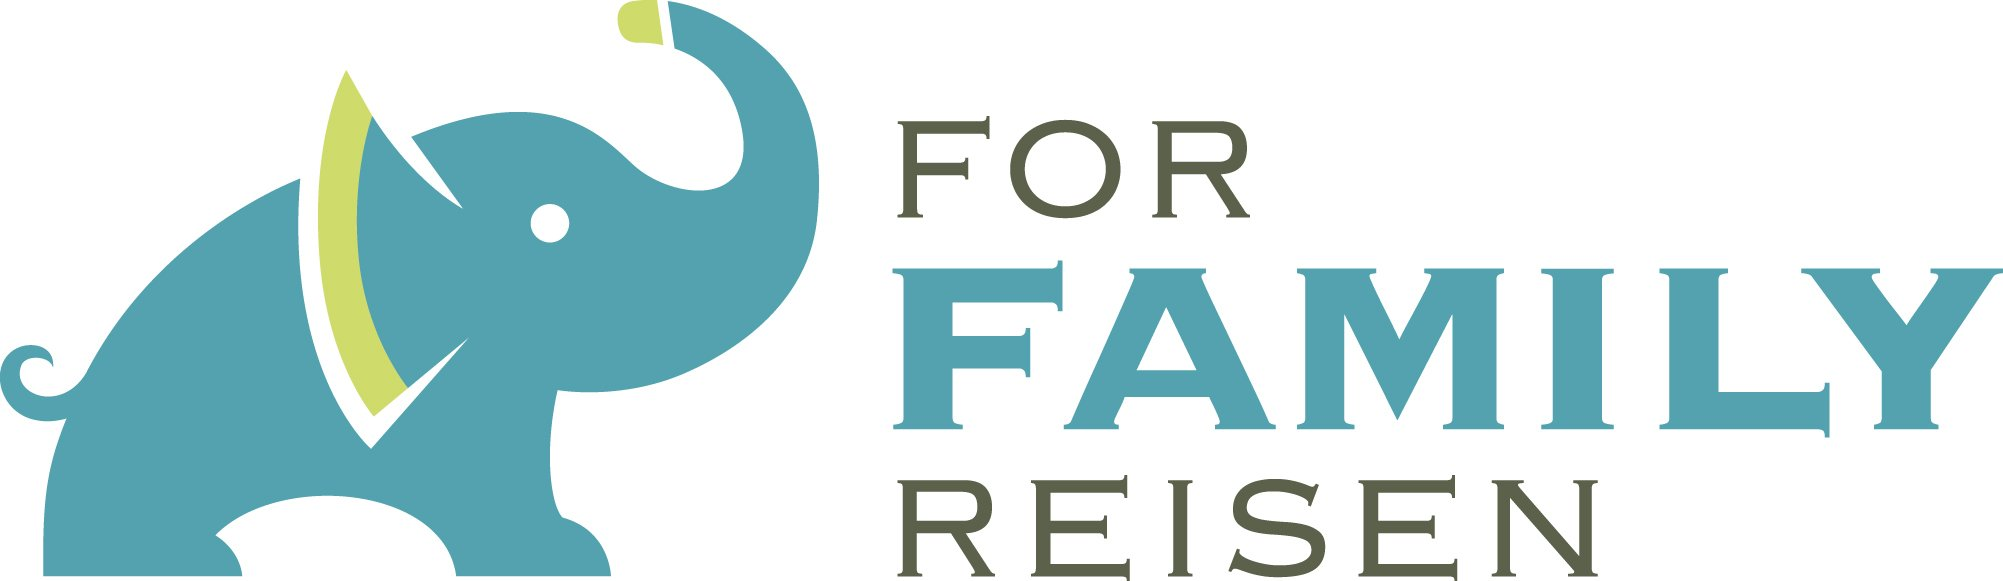 Logo For Family Reisen © For Family Reisen